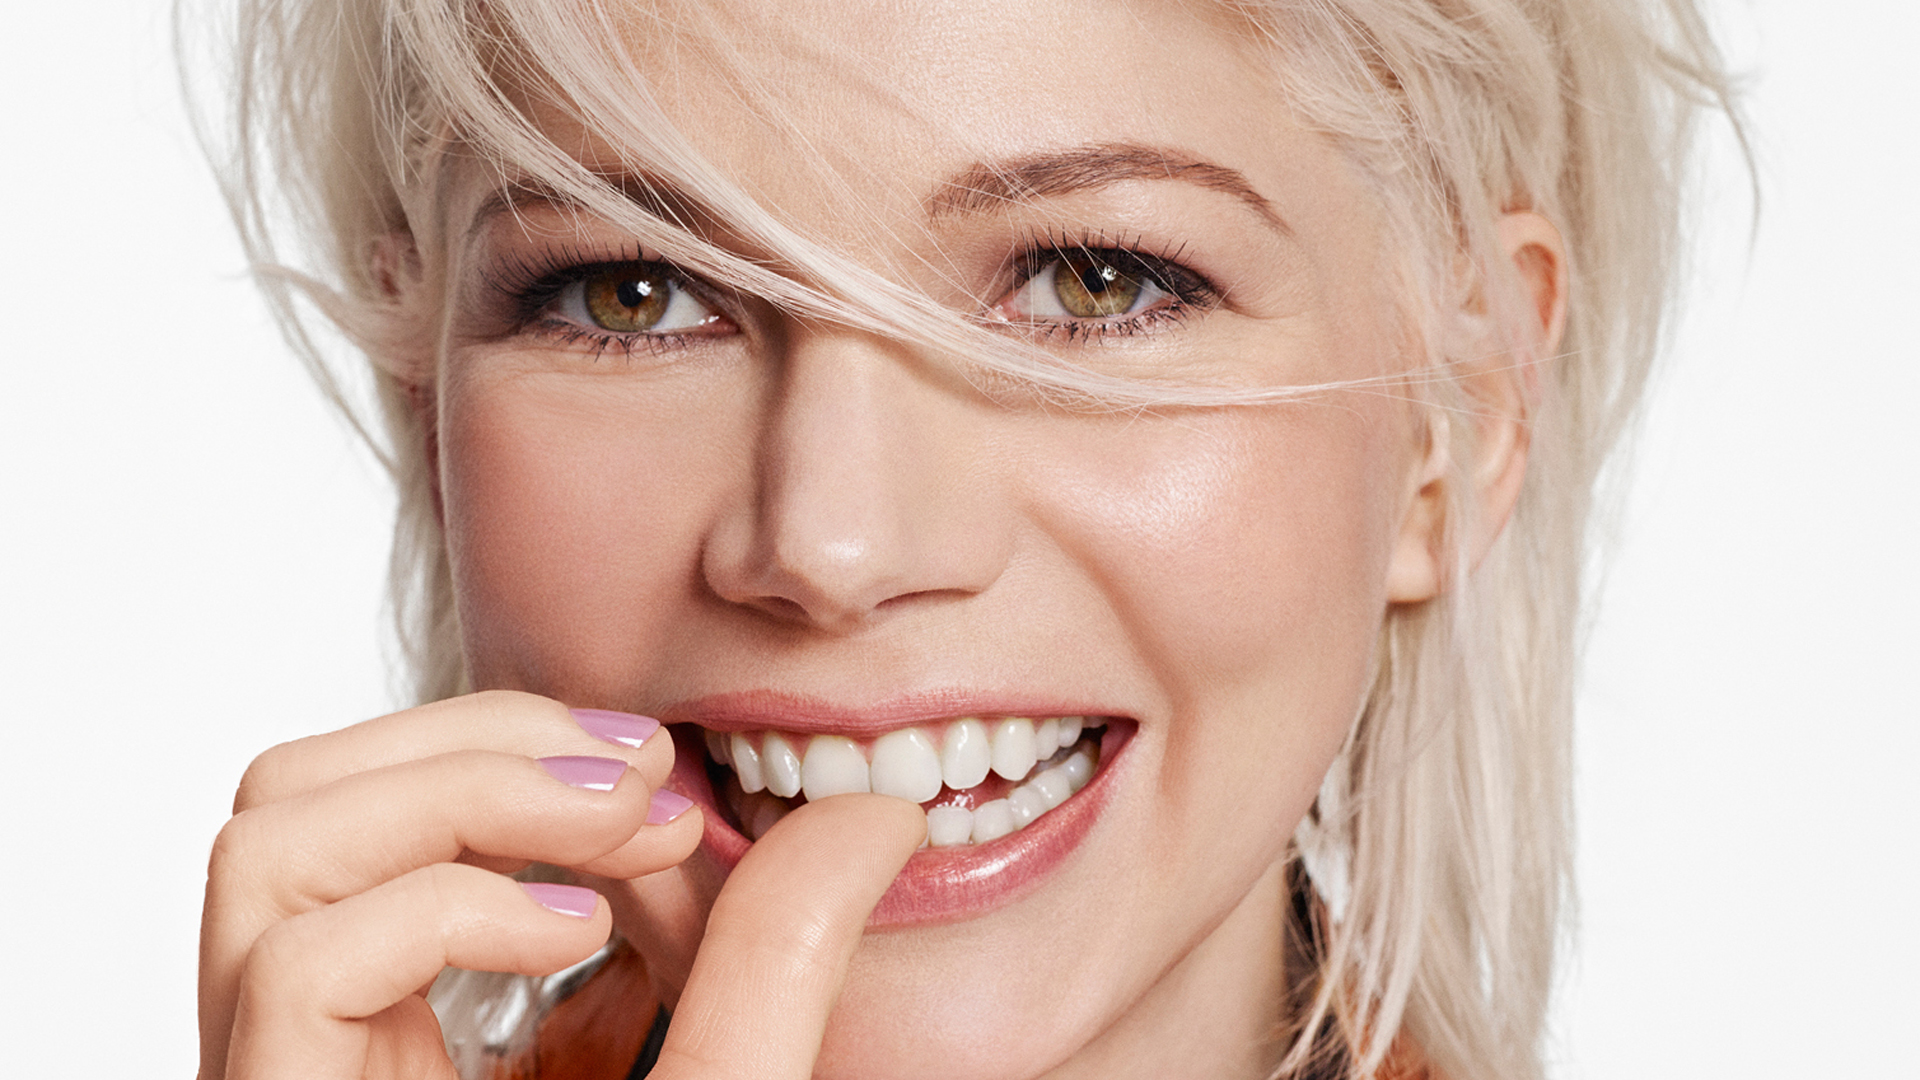 cute michelle williams smile wallpaper 53739